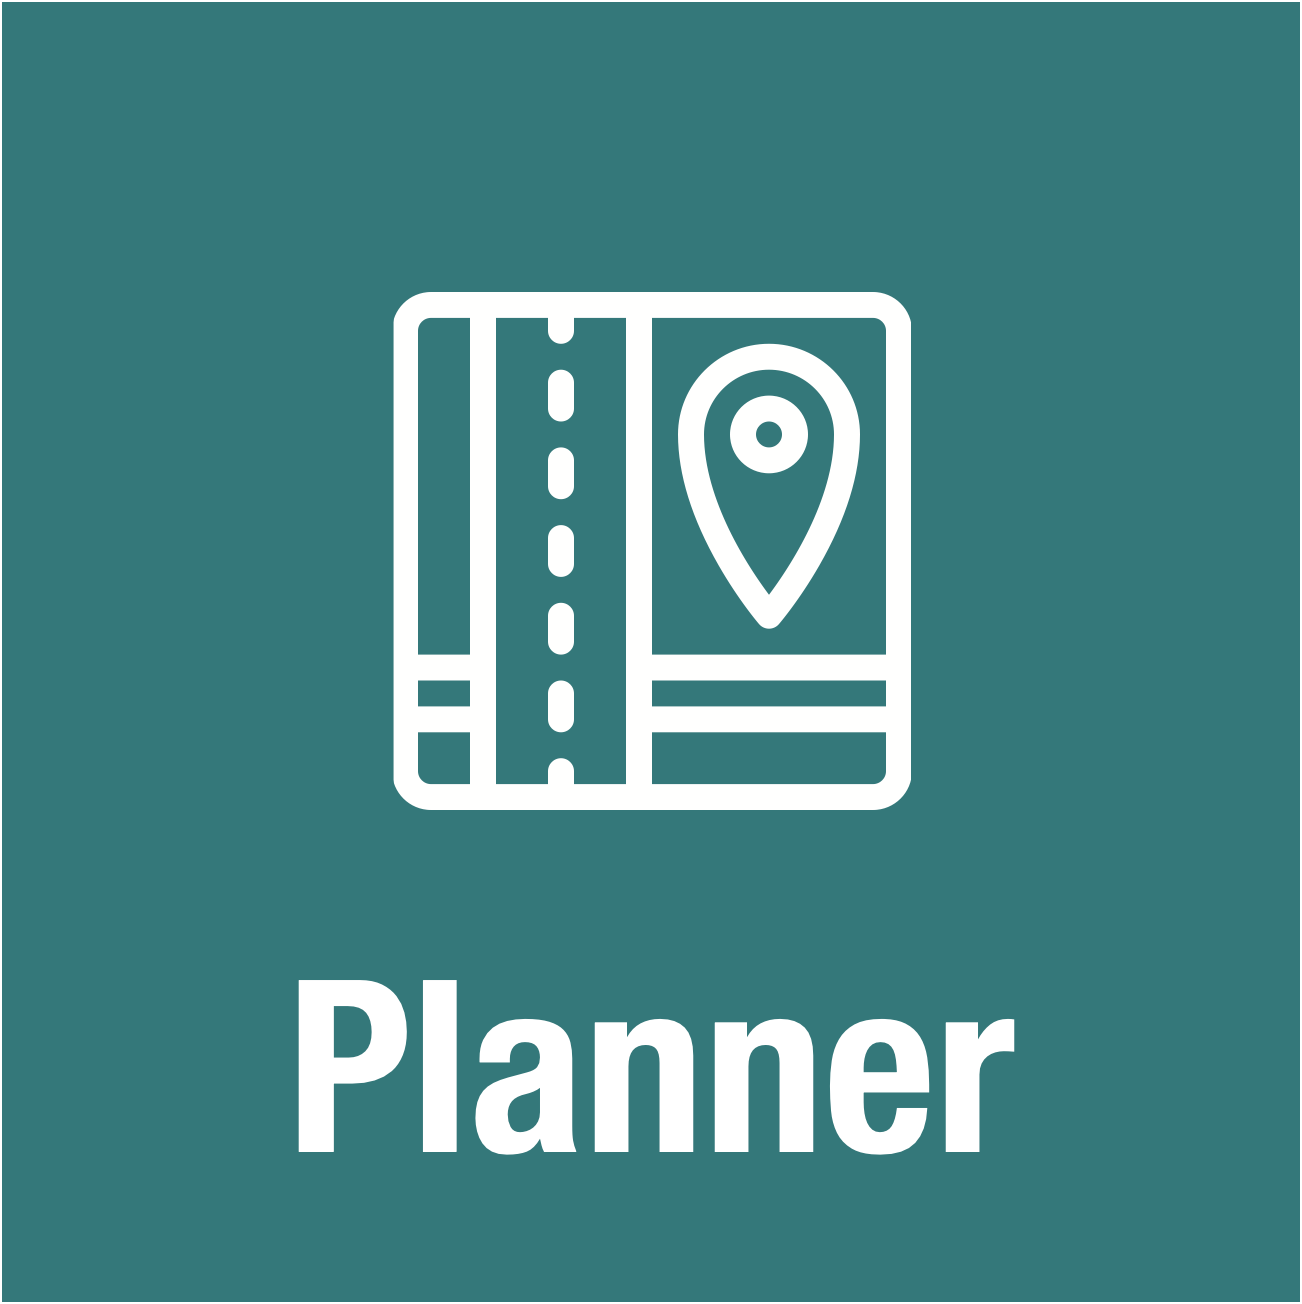 A gps map icon